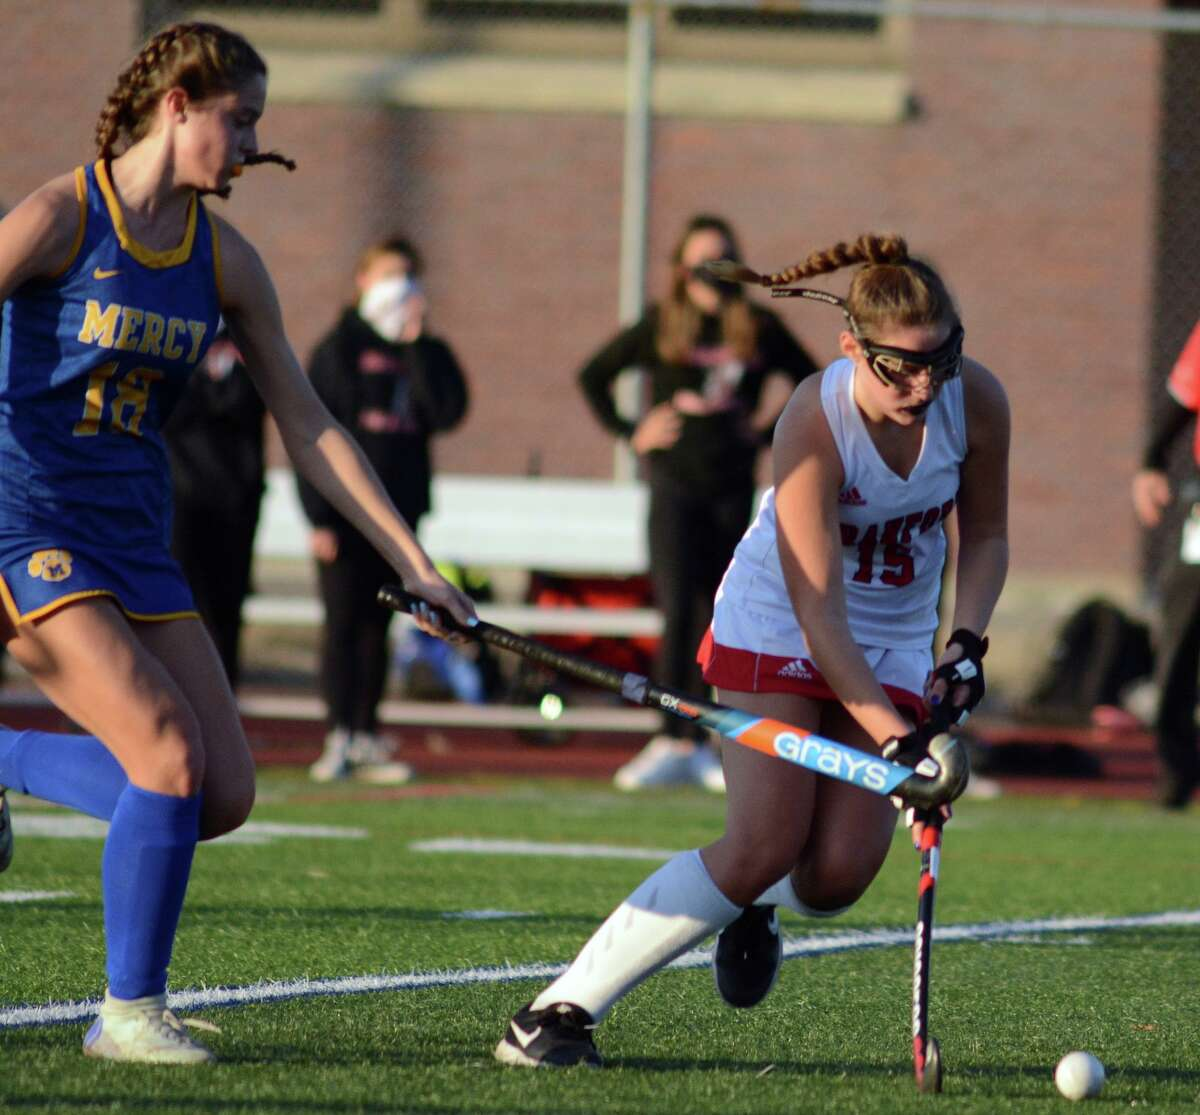 Mercy's Lily Schoonmaker and Branford's Scout Engstrom fight for the ball on Saturday.